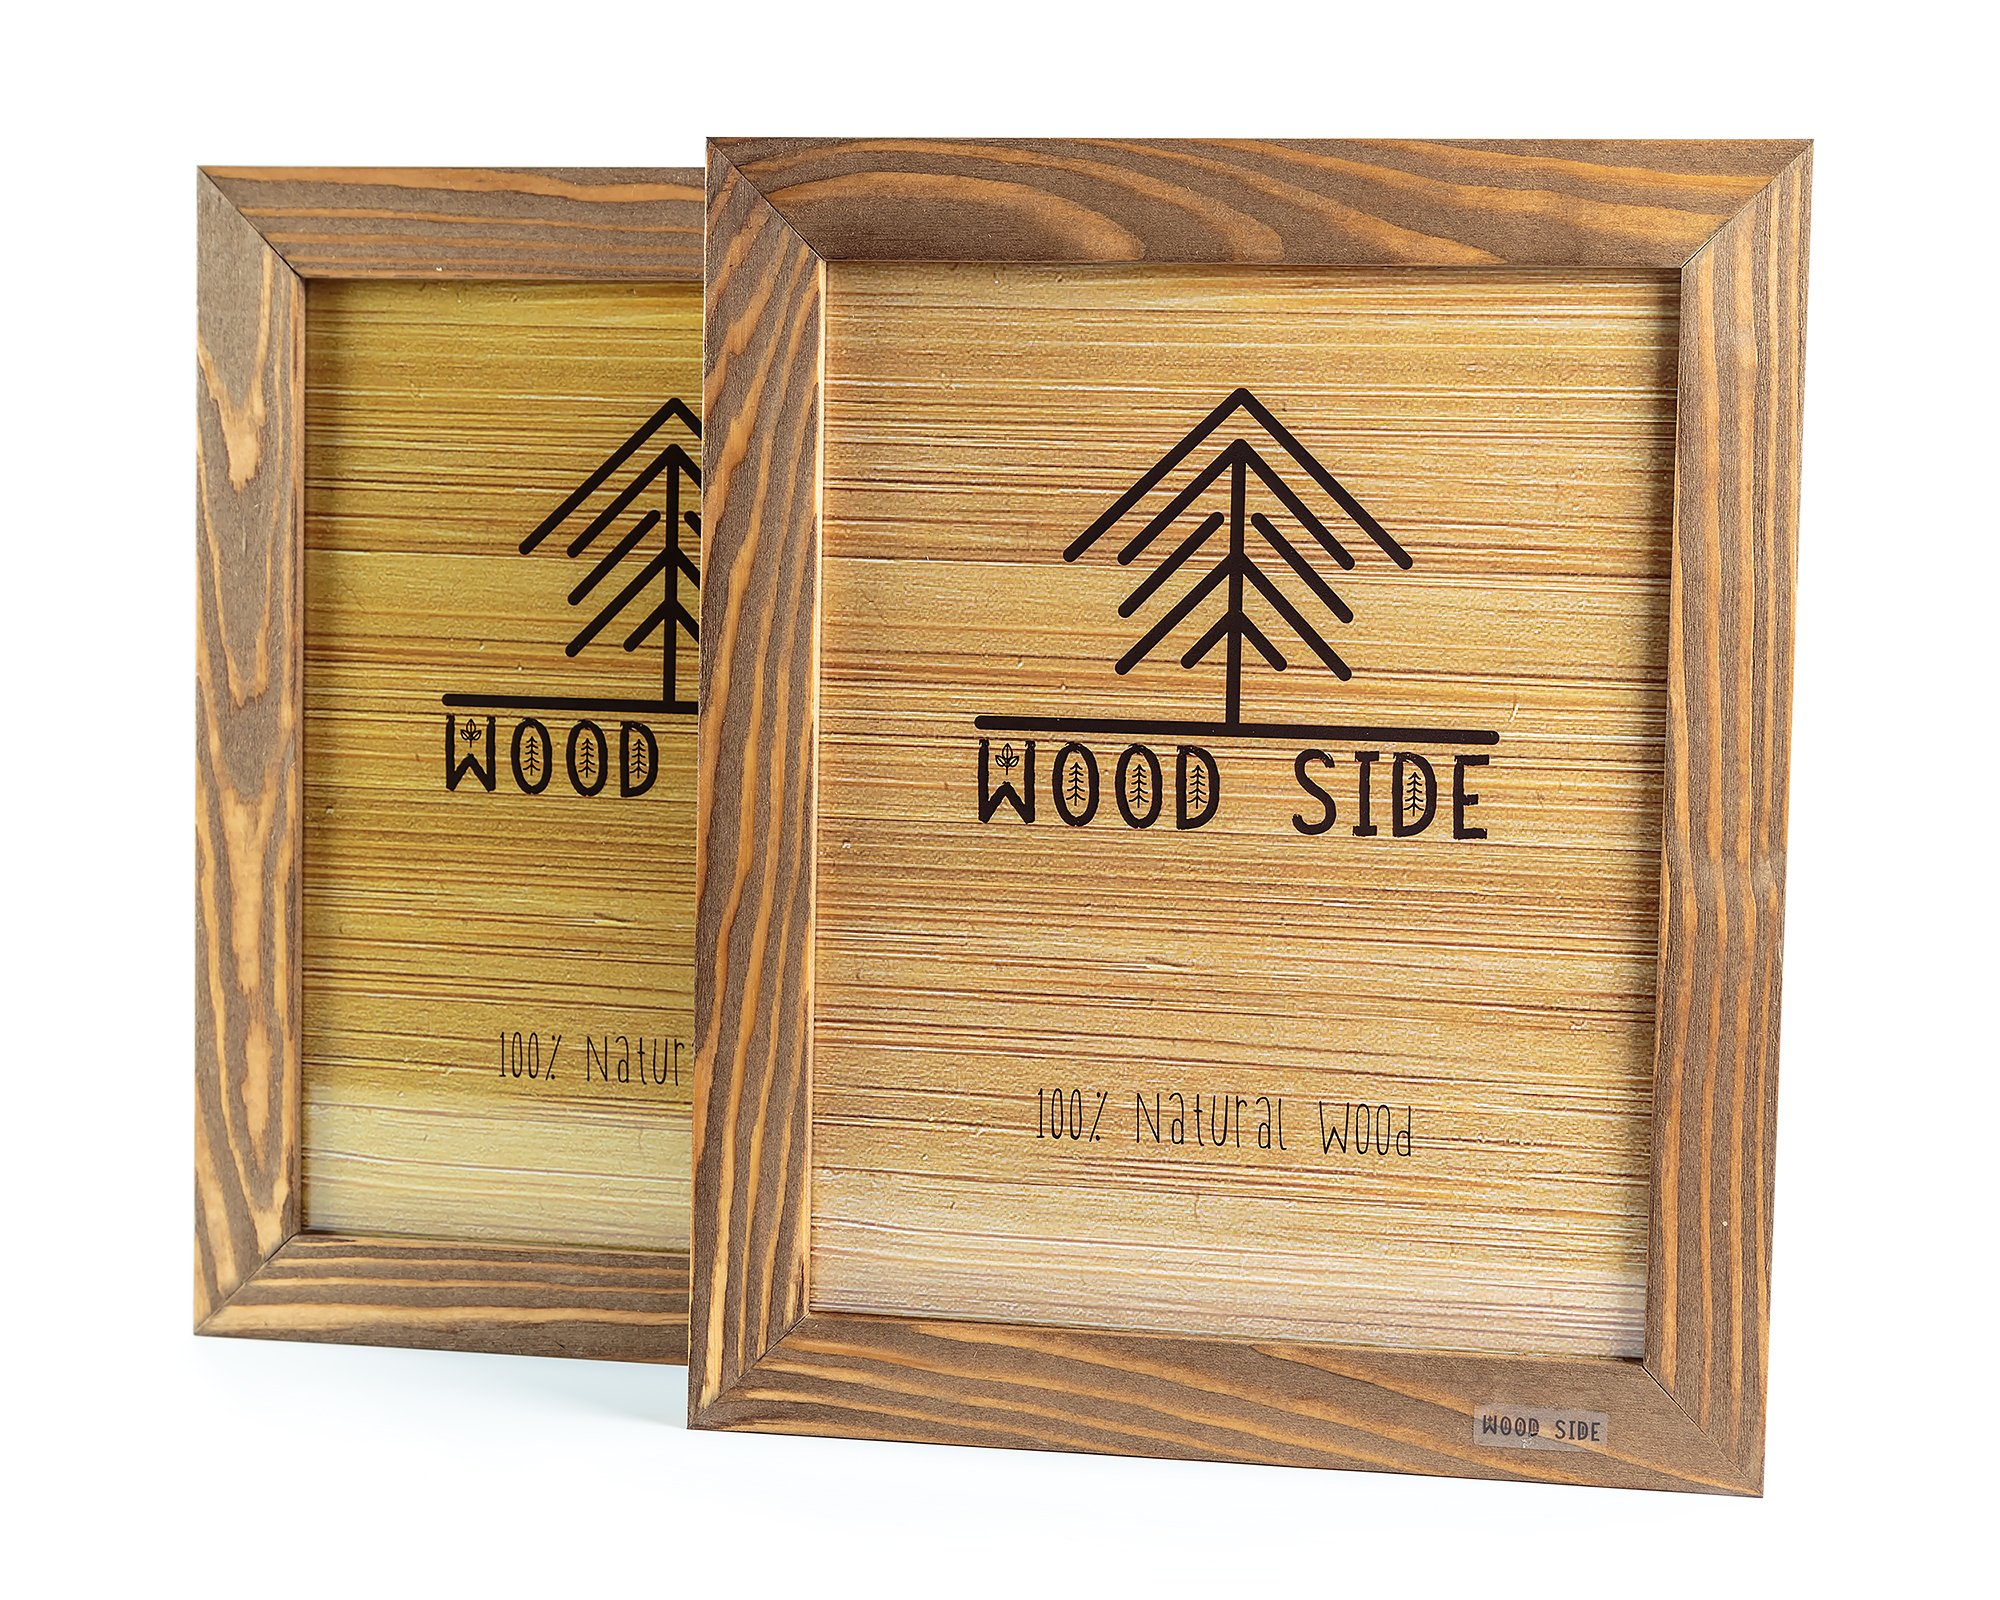 Rustic wooden picture frame 8x10 - Made to display Pictures 8x10 - Set of 2-100% Natural Eco Wood and Real Glass for Wall mounting Walnut photo frame